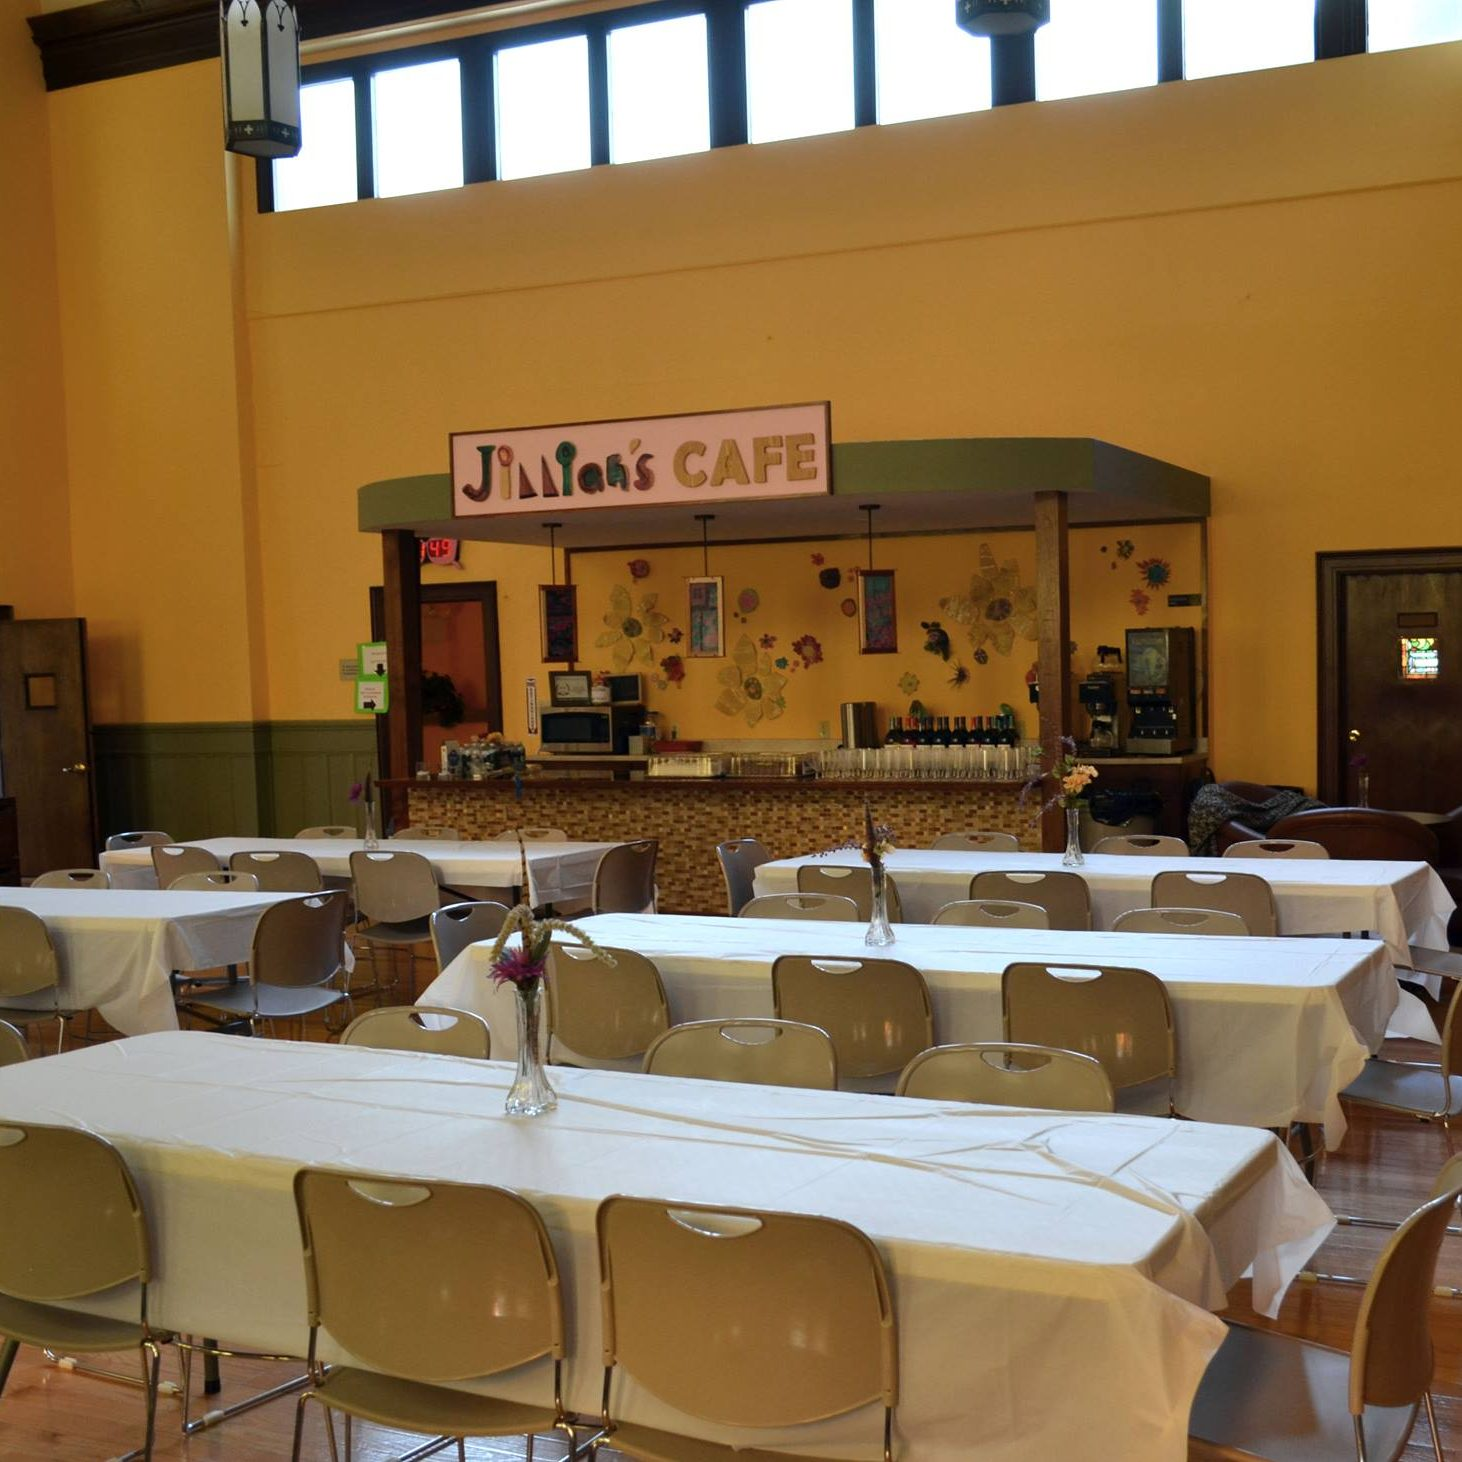 Conshohocken UMC Jillian's Cafe